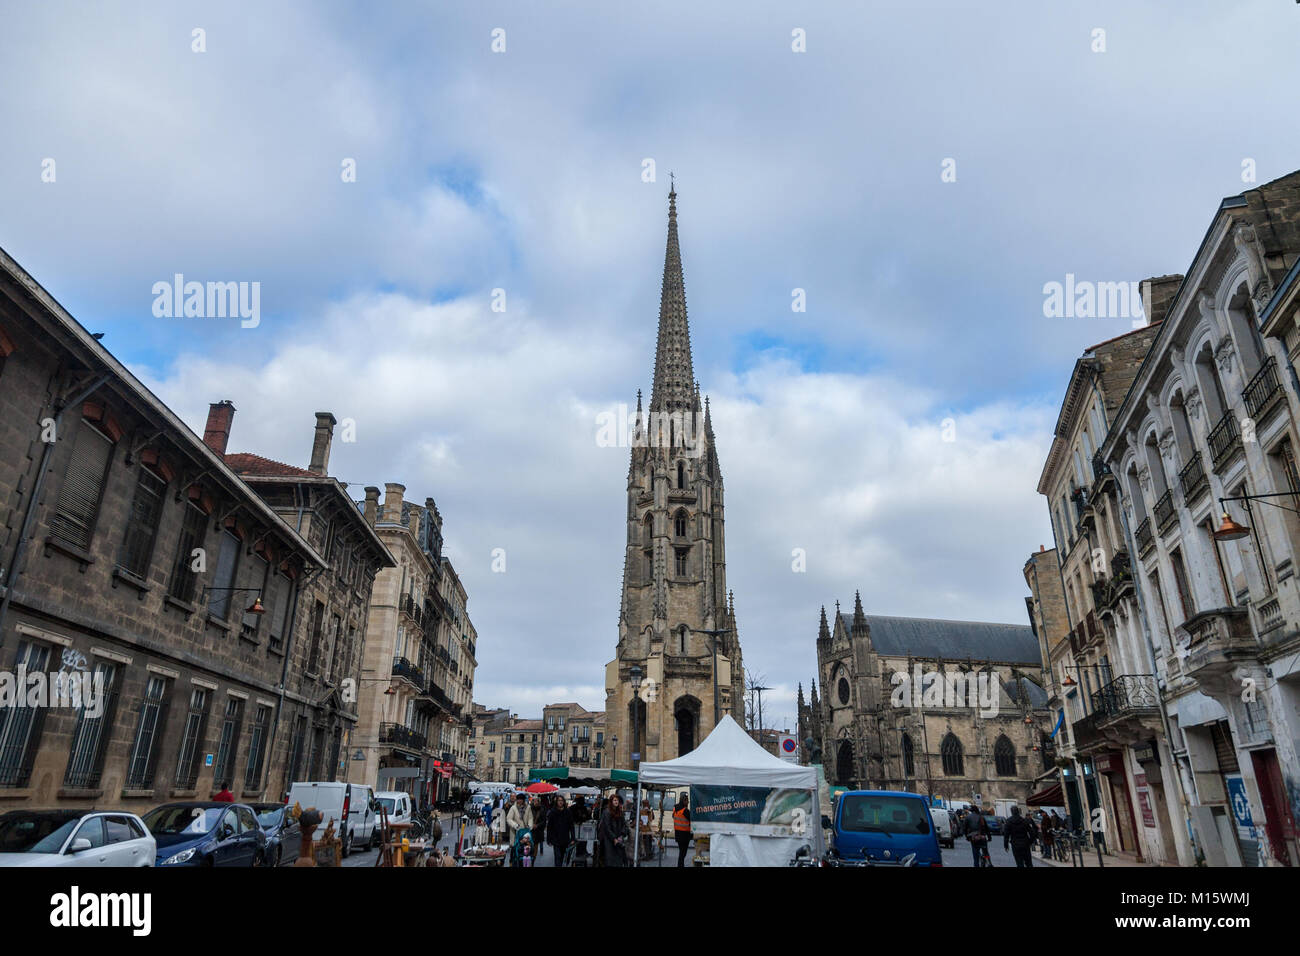 BORDEAUX, FRANCE - DECEMBER 24, 2017: St Michel Basilica (Basilique Saint Michel) with its iconic tower in the city - Stock Image